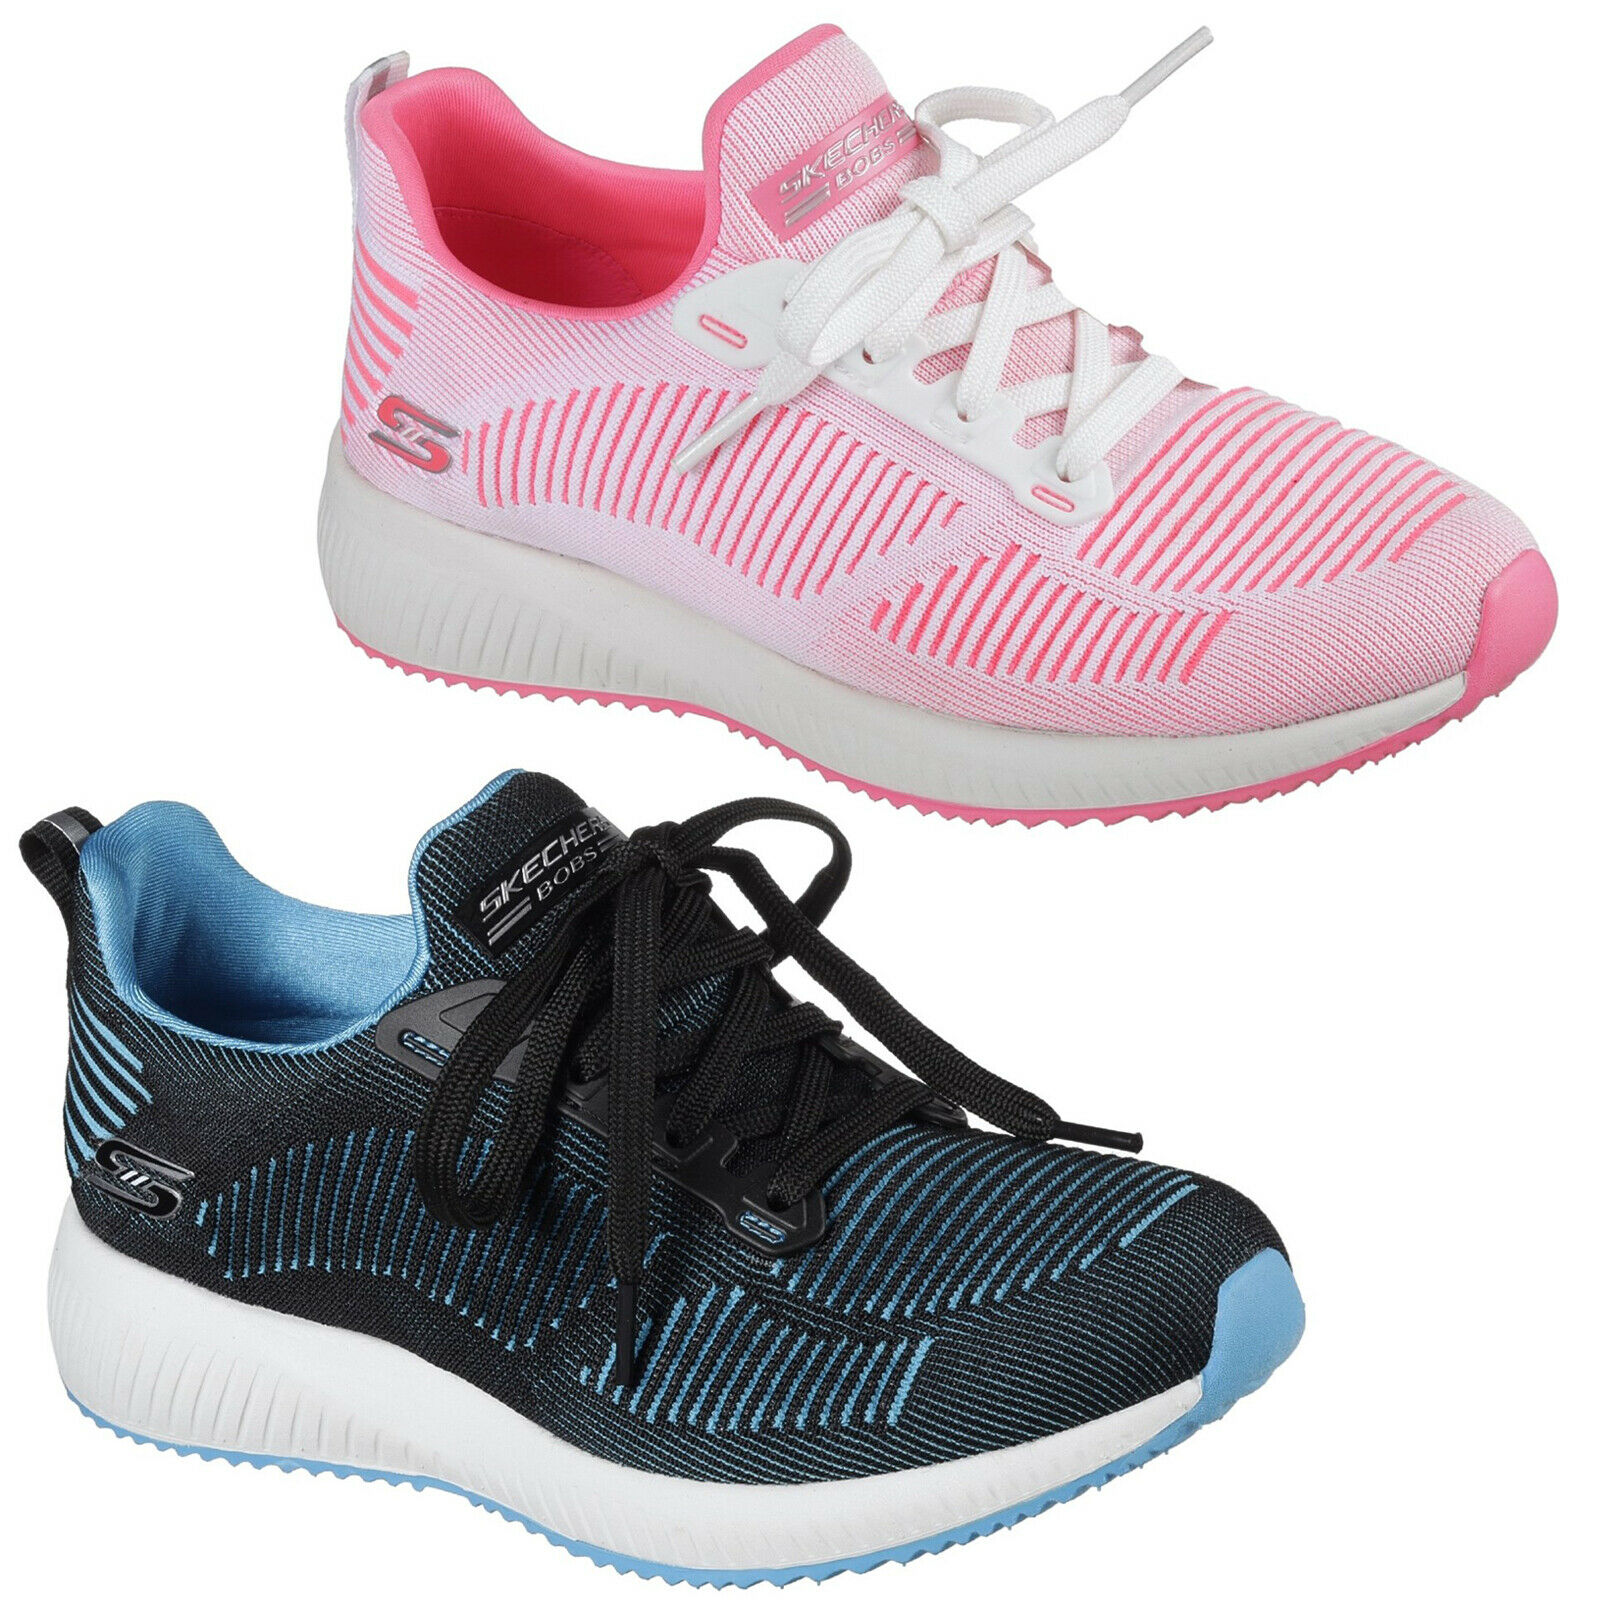 Skechers Bobs Sport Squad Twinning Trainers Memory Foam Knit Fashion Womens shoes